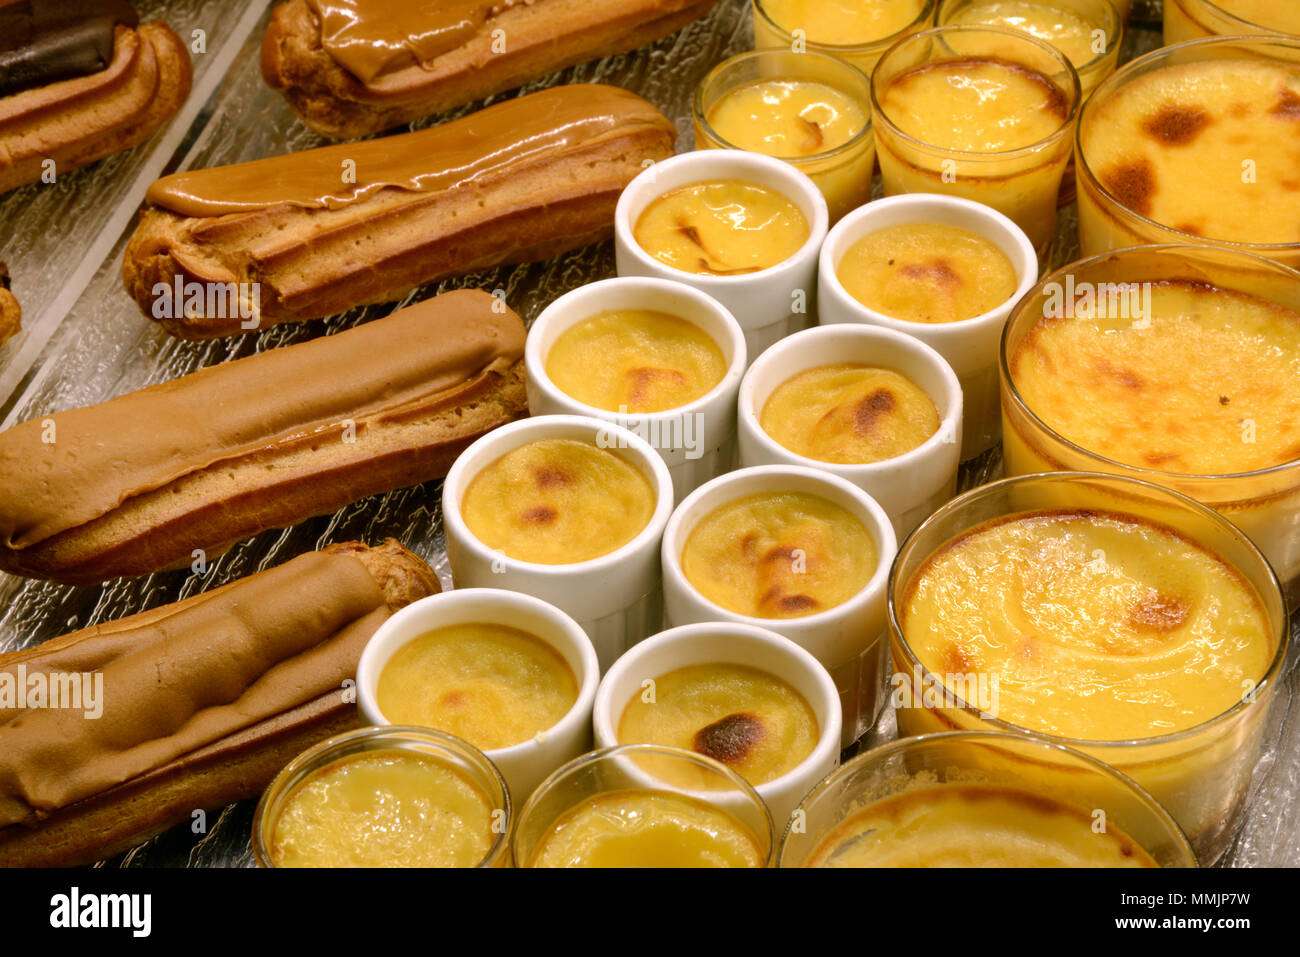 Display of Crèmes Caramels & Coffee Eclairs Pastries or Cakes in a French Patisserie France - Stock Image